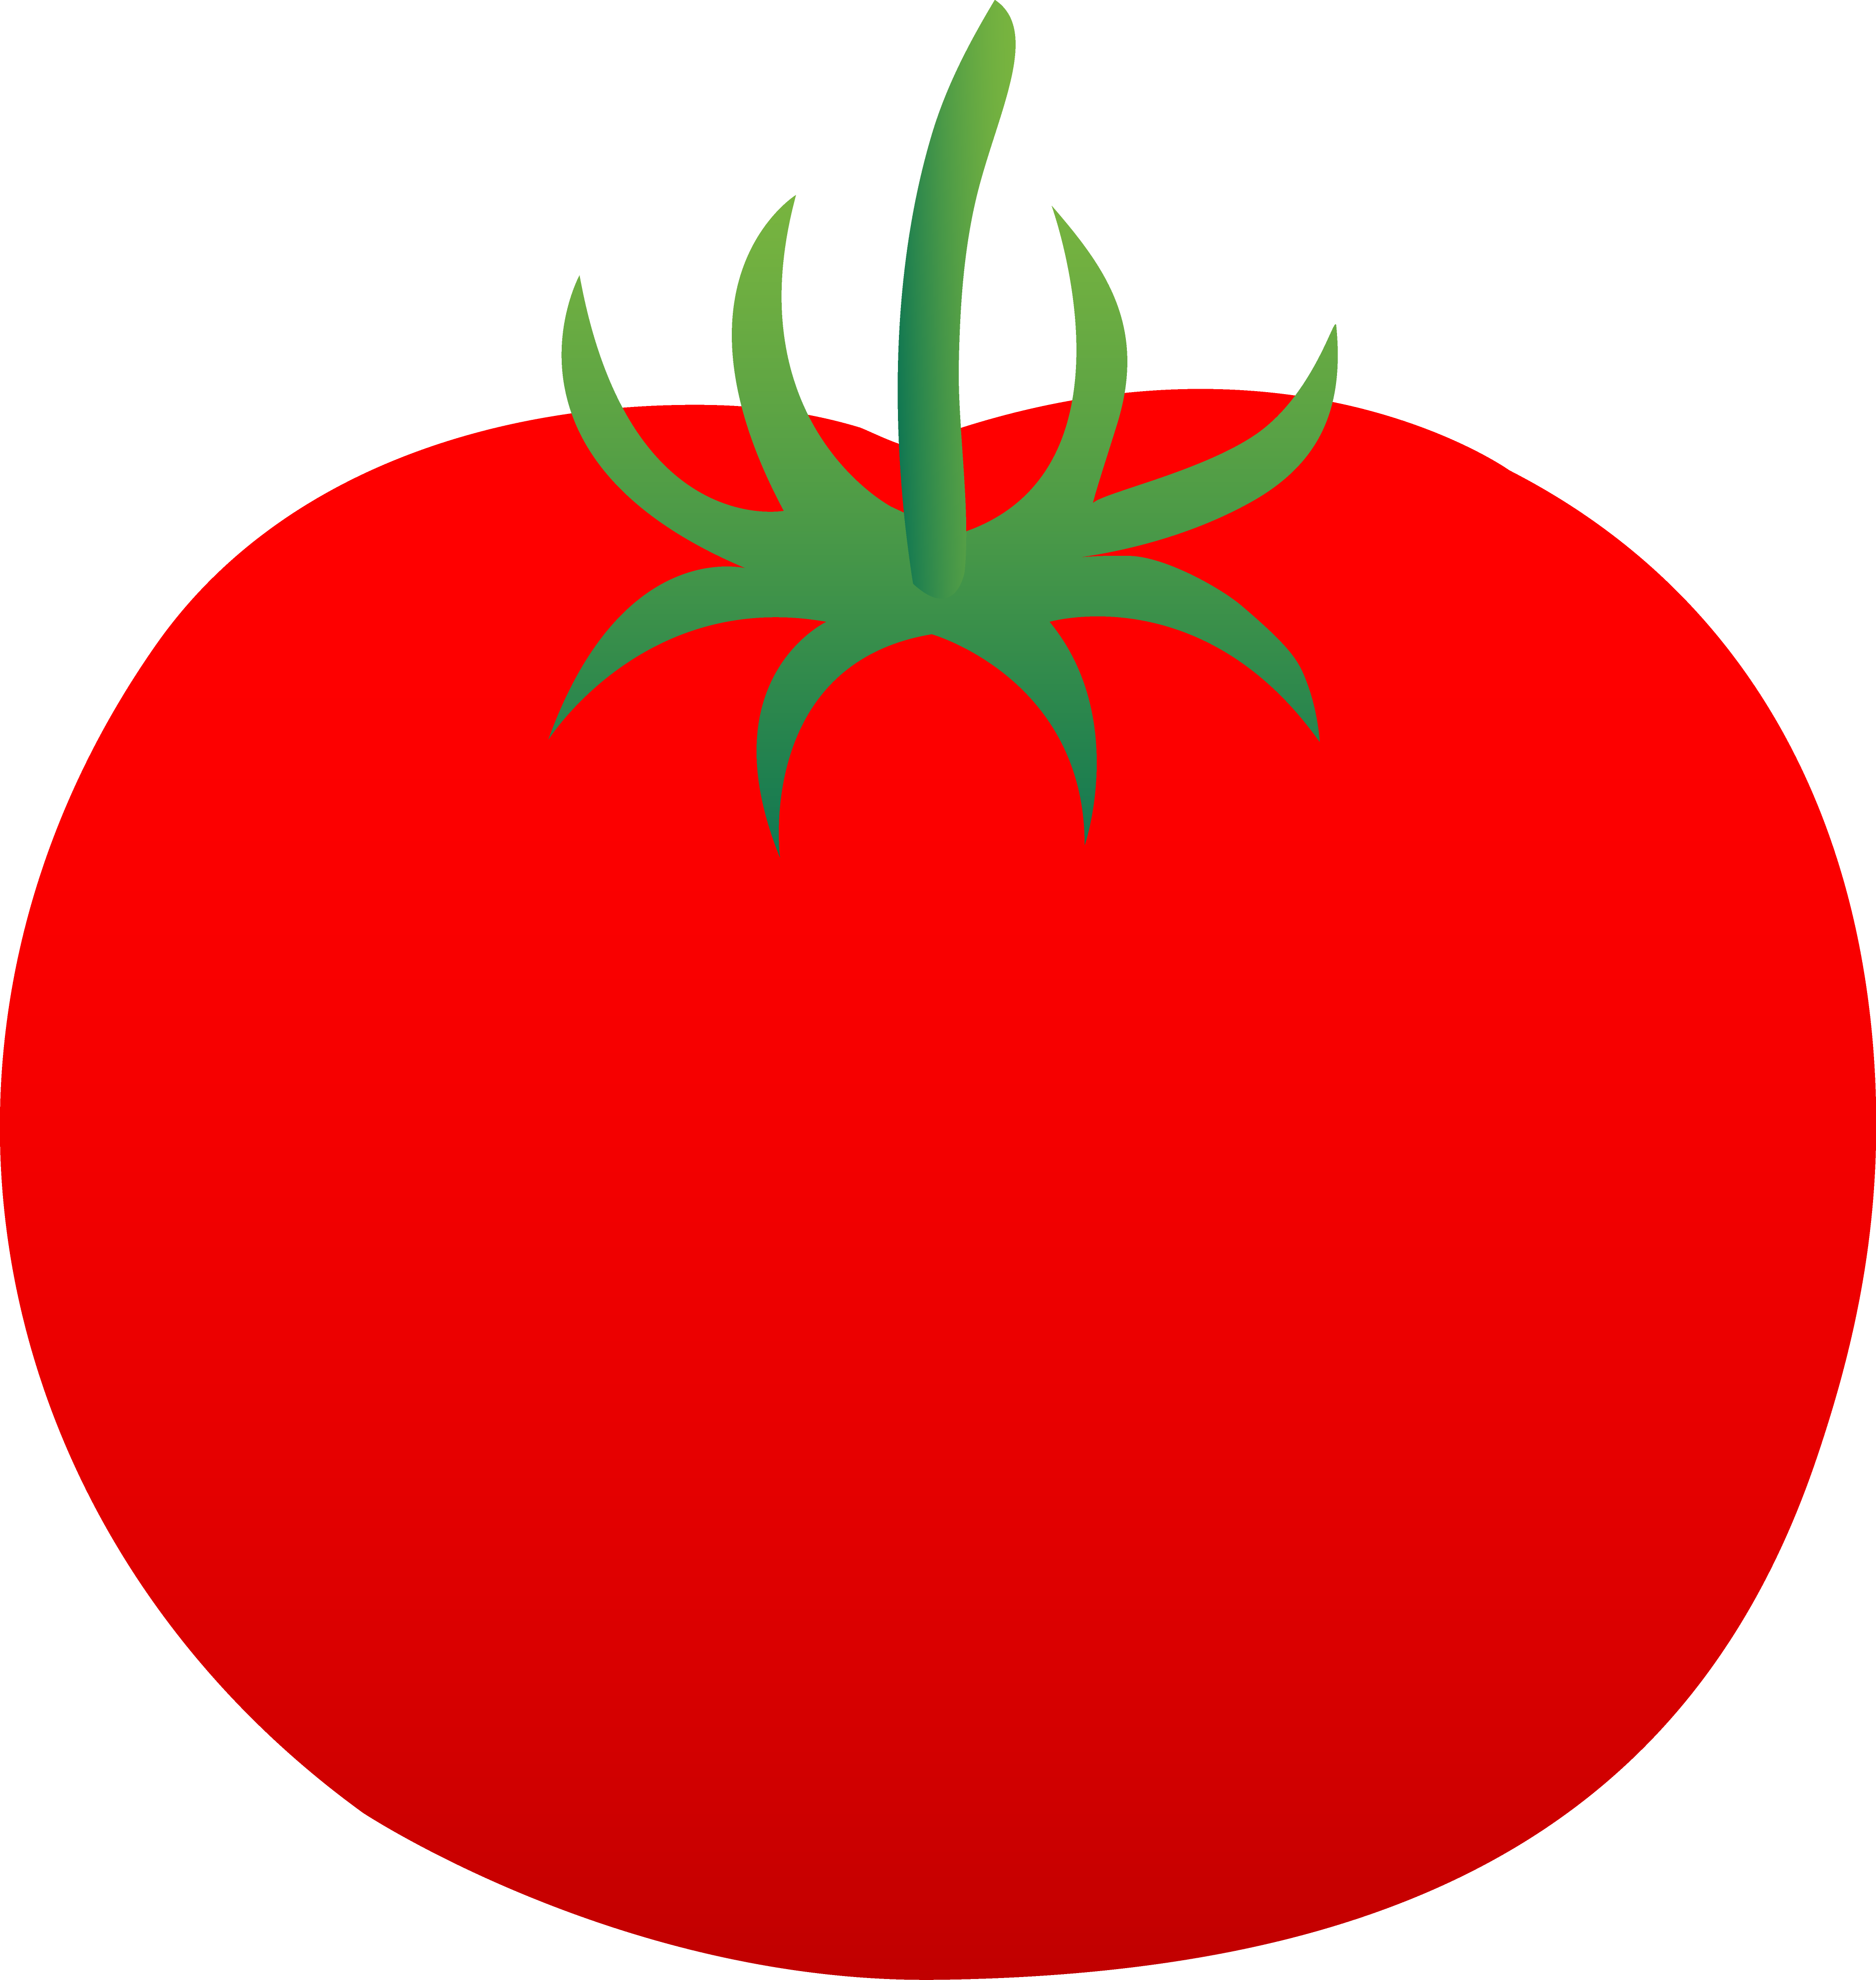 Tomatoes Clip Art - Free PNG Tomatoes